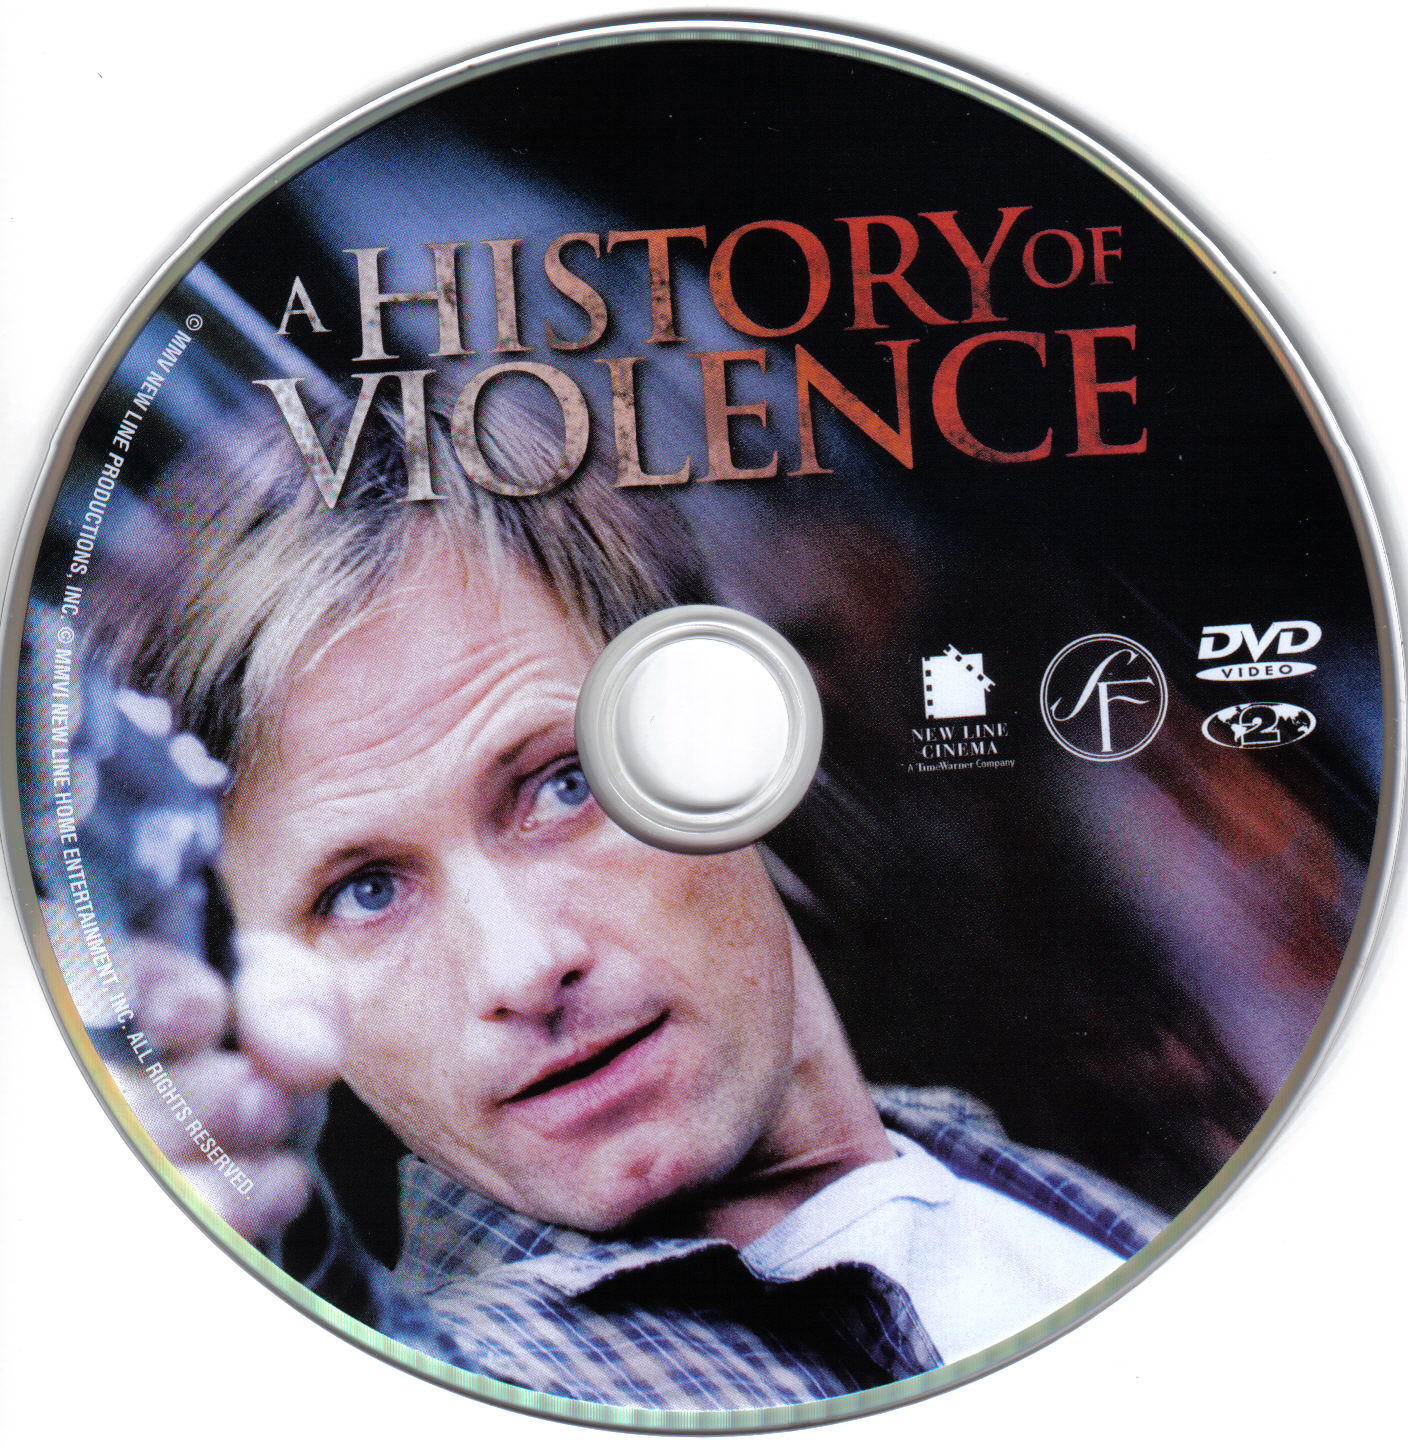 a history of violence full movie watch online free